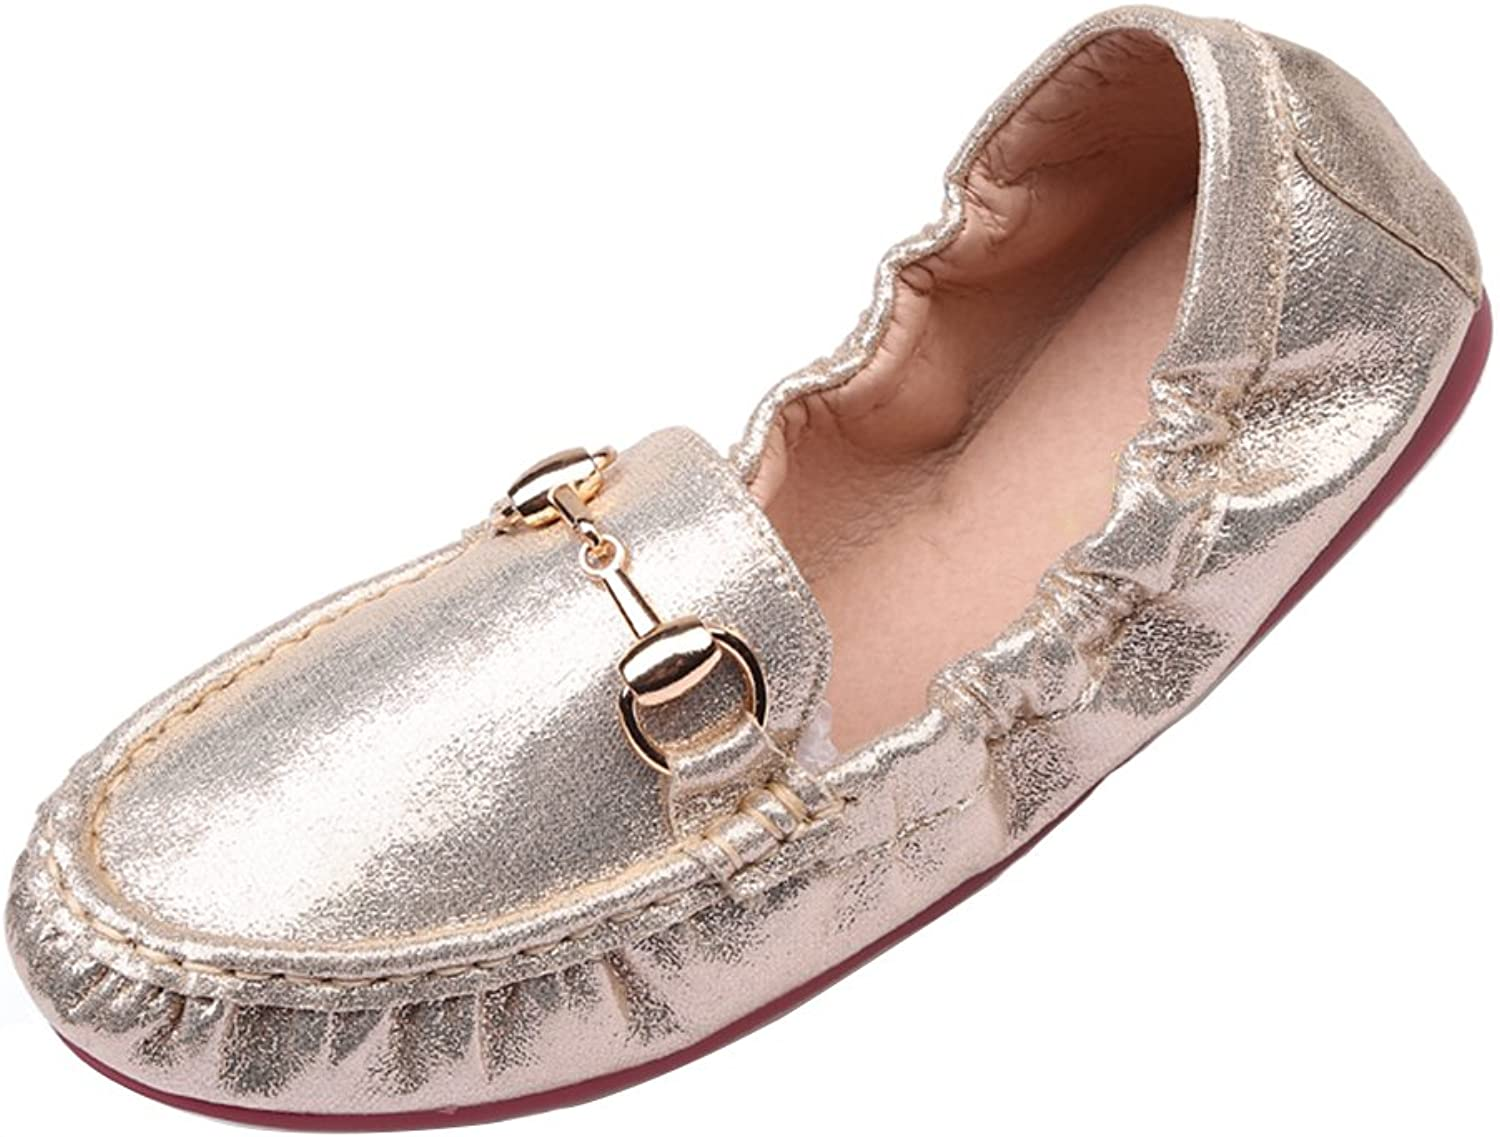 Kyle Walsh Pa Womens Classic Metal Buckle Flat Slip-On